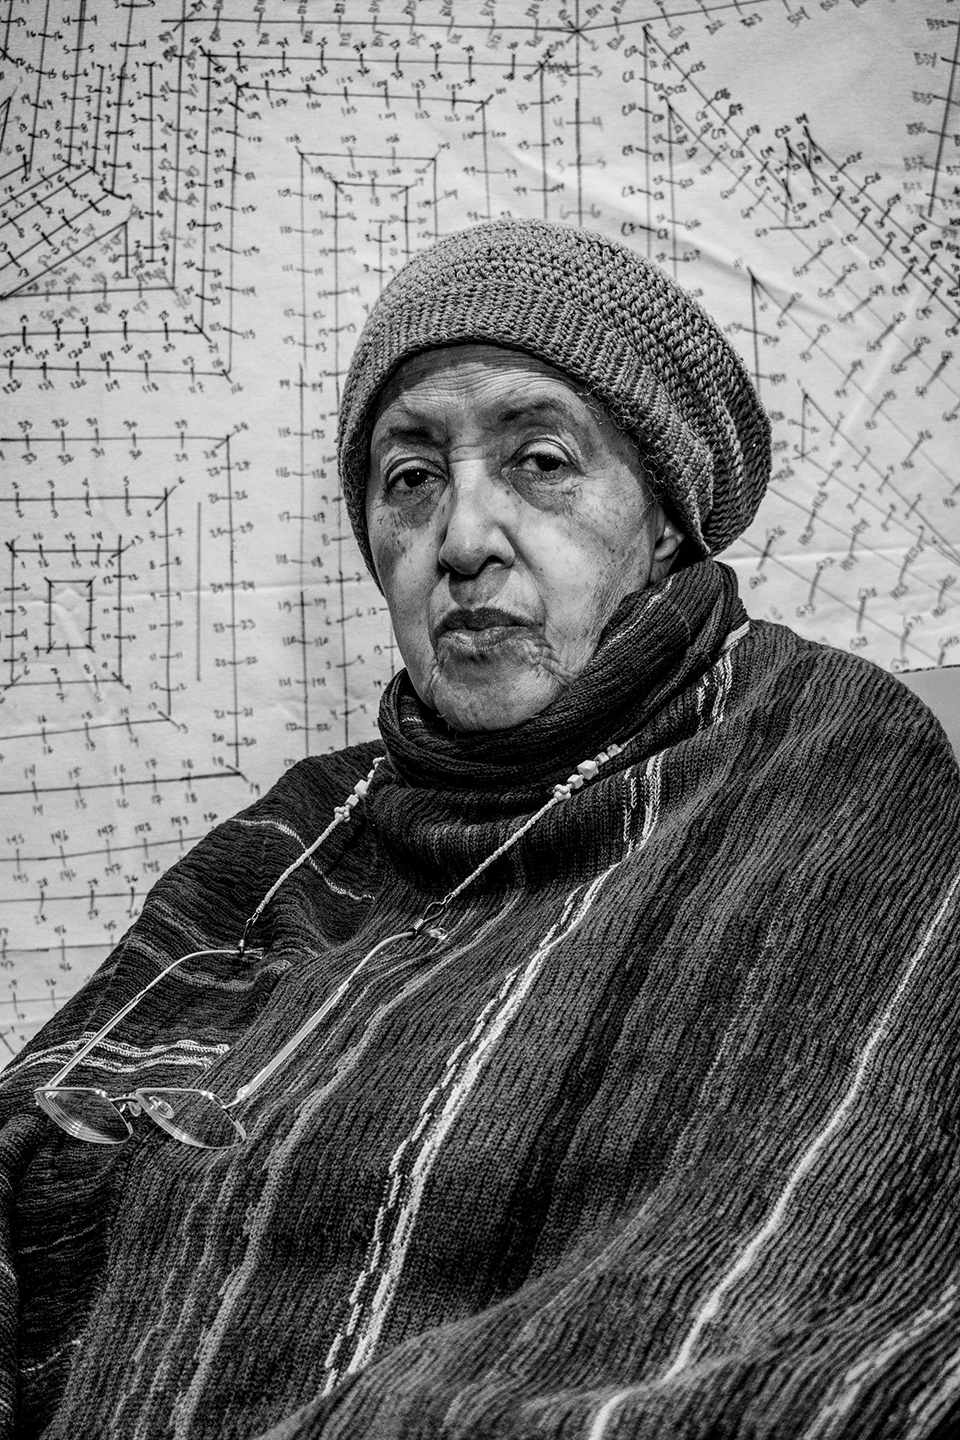 A black-and-white photo of a woman in a knitted cap and long shawl